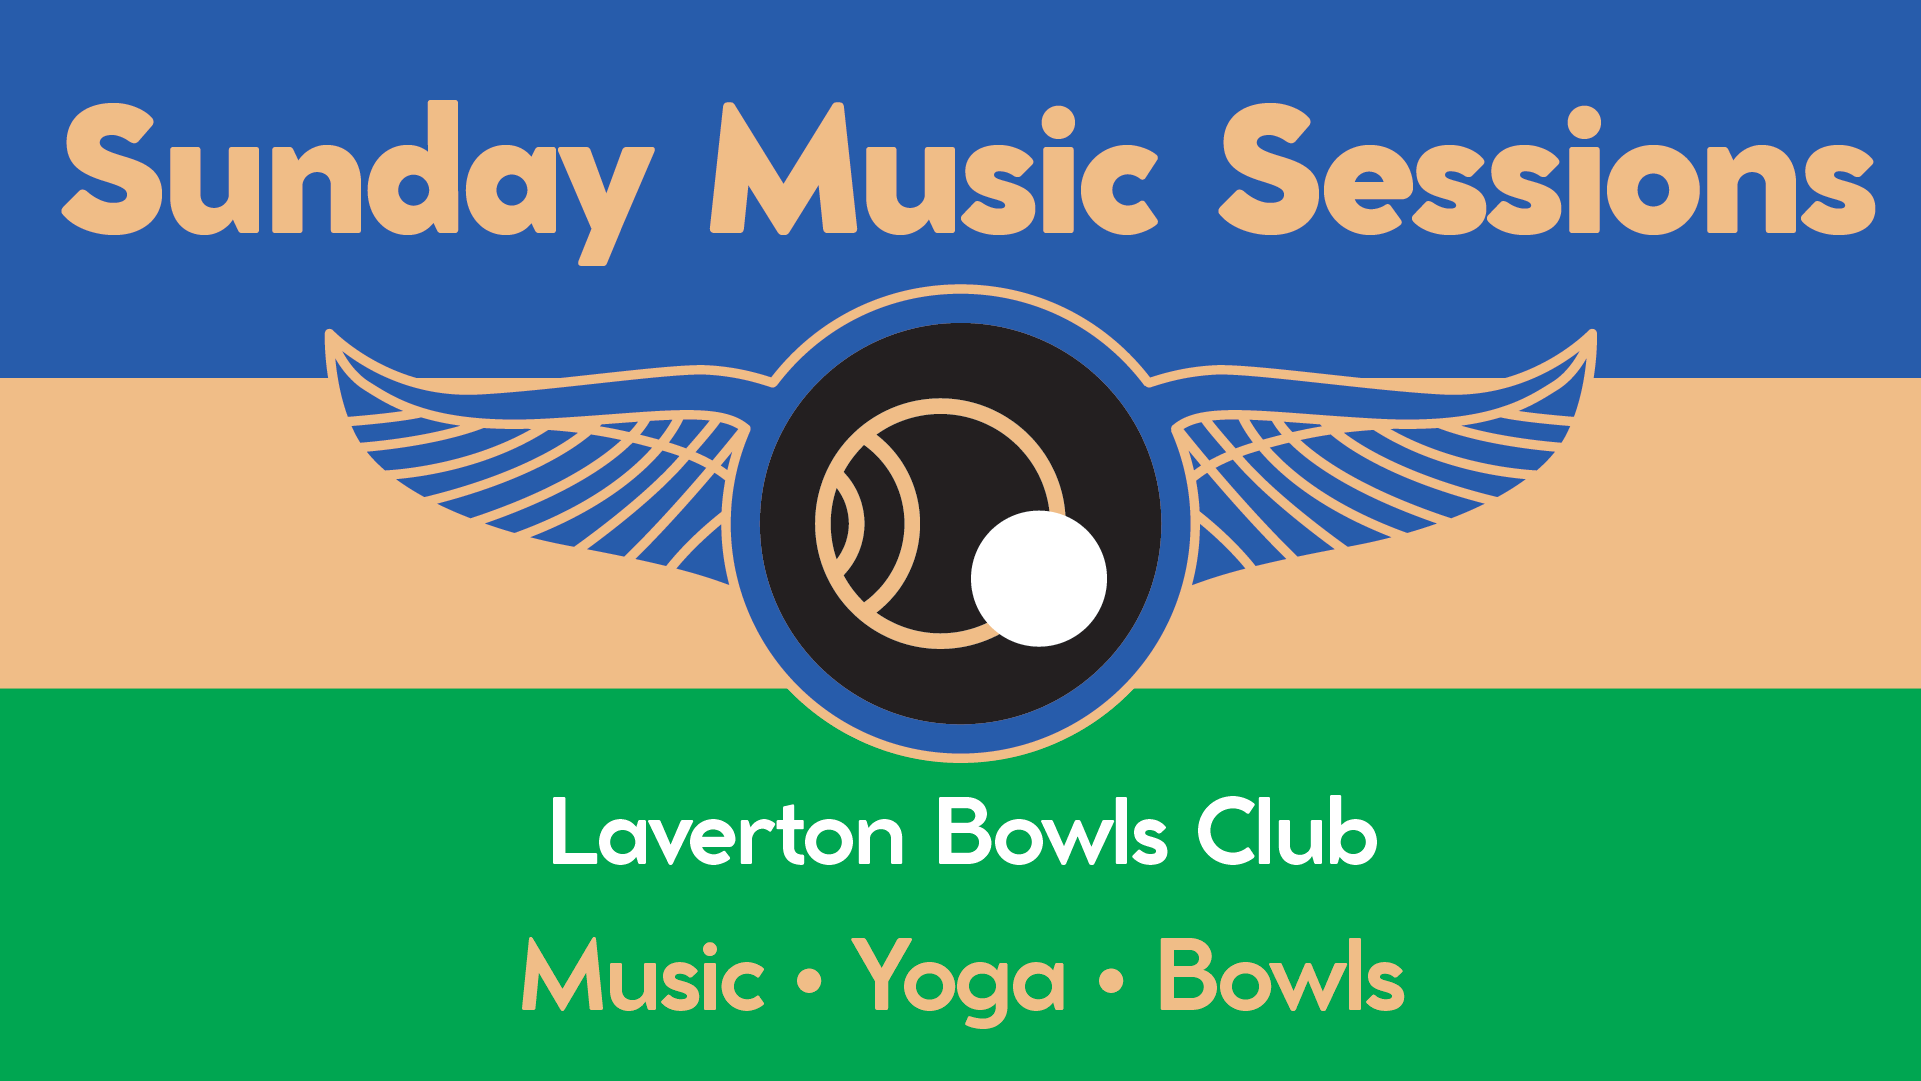 Fly me to the Green - Laverton Bowls Club Band Room